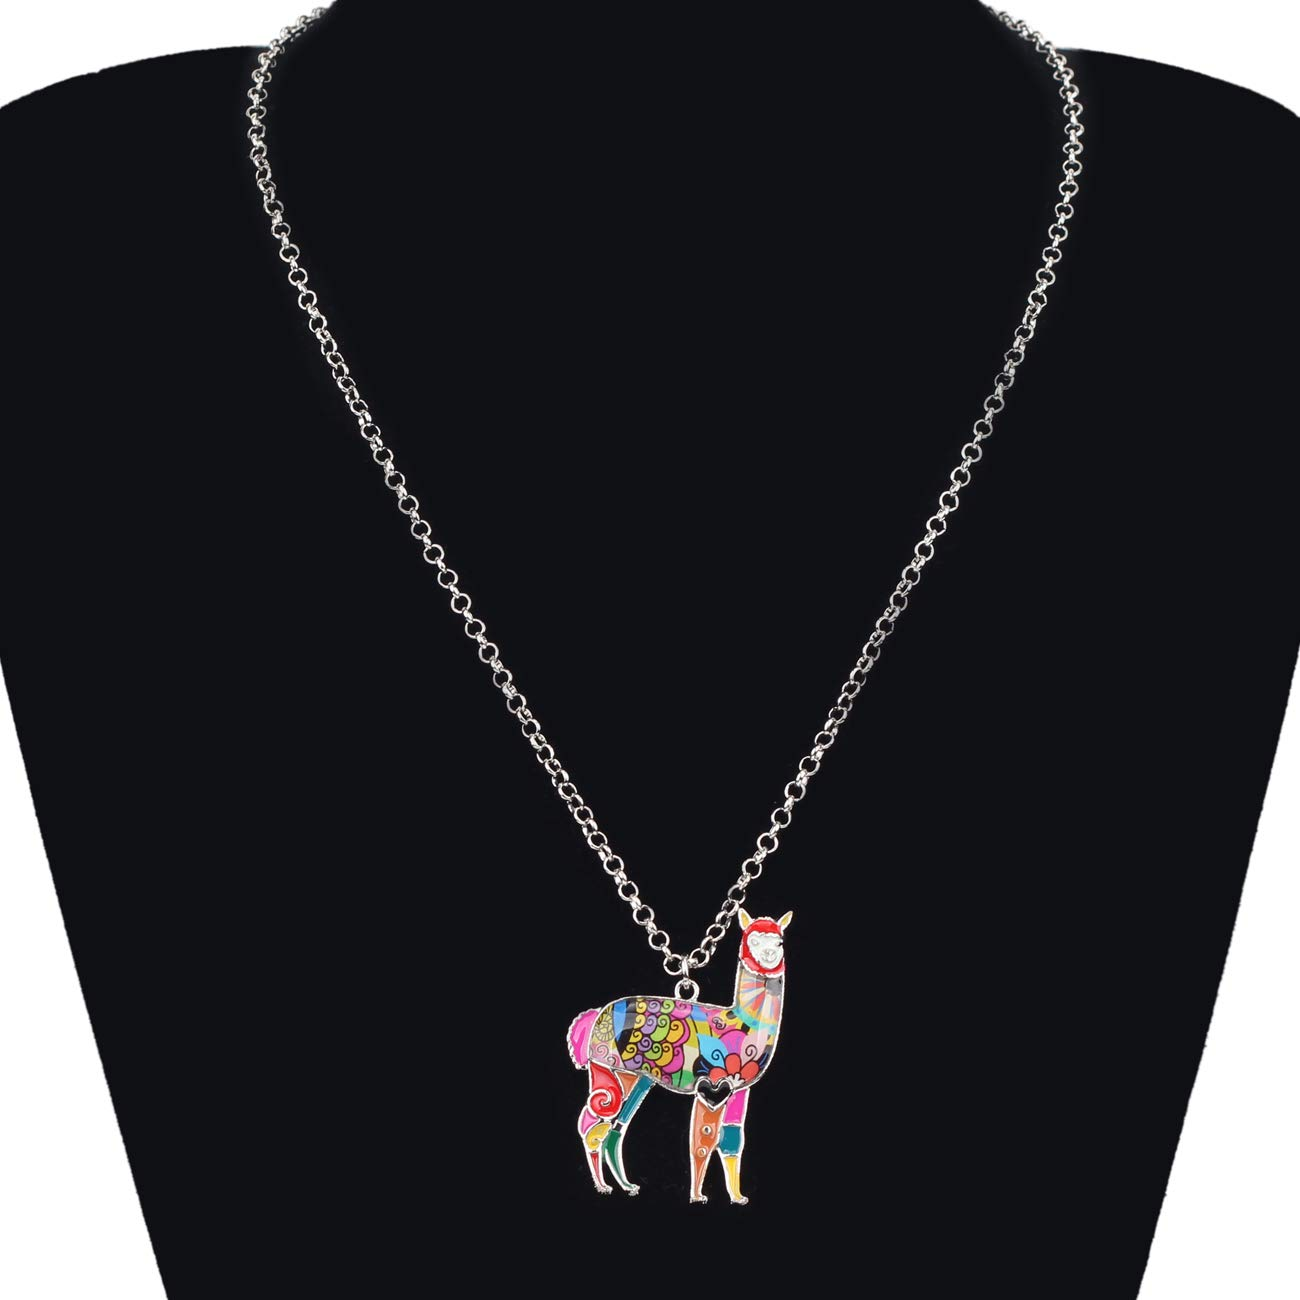 Bonsny Zinc Enamel Alloy South America Floral Alpaca Necklace Chain Pendant Jewelry for Women Girls Charms Gift AN719